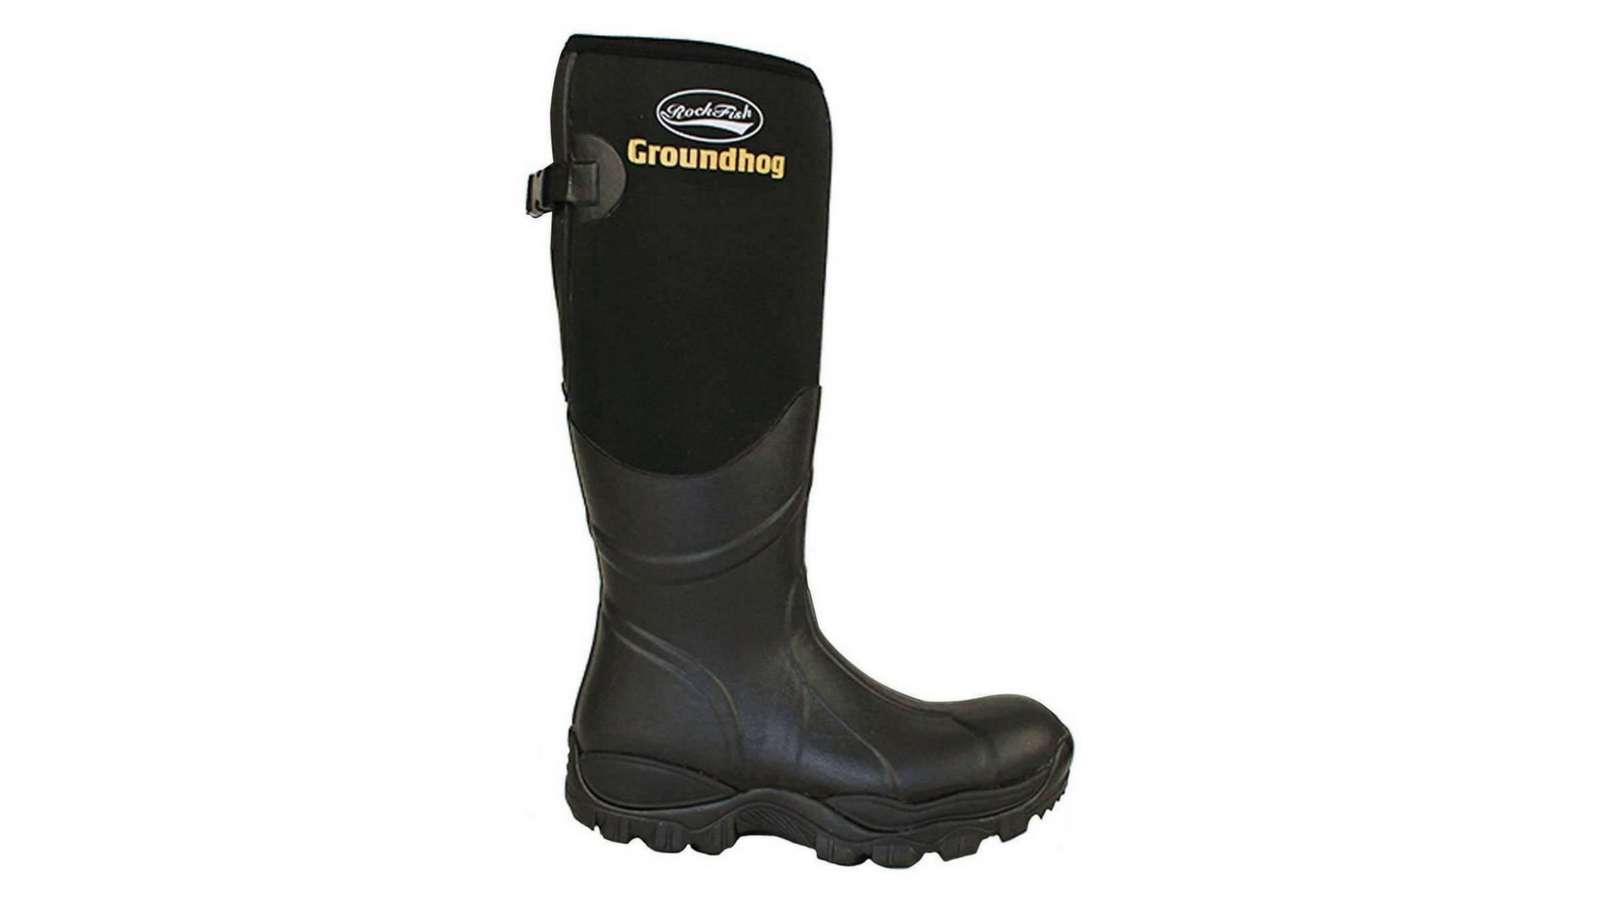 eaccfdd0d03 The no-nonsense Groundhog is far more technical than your average wellie  boot. These handsome